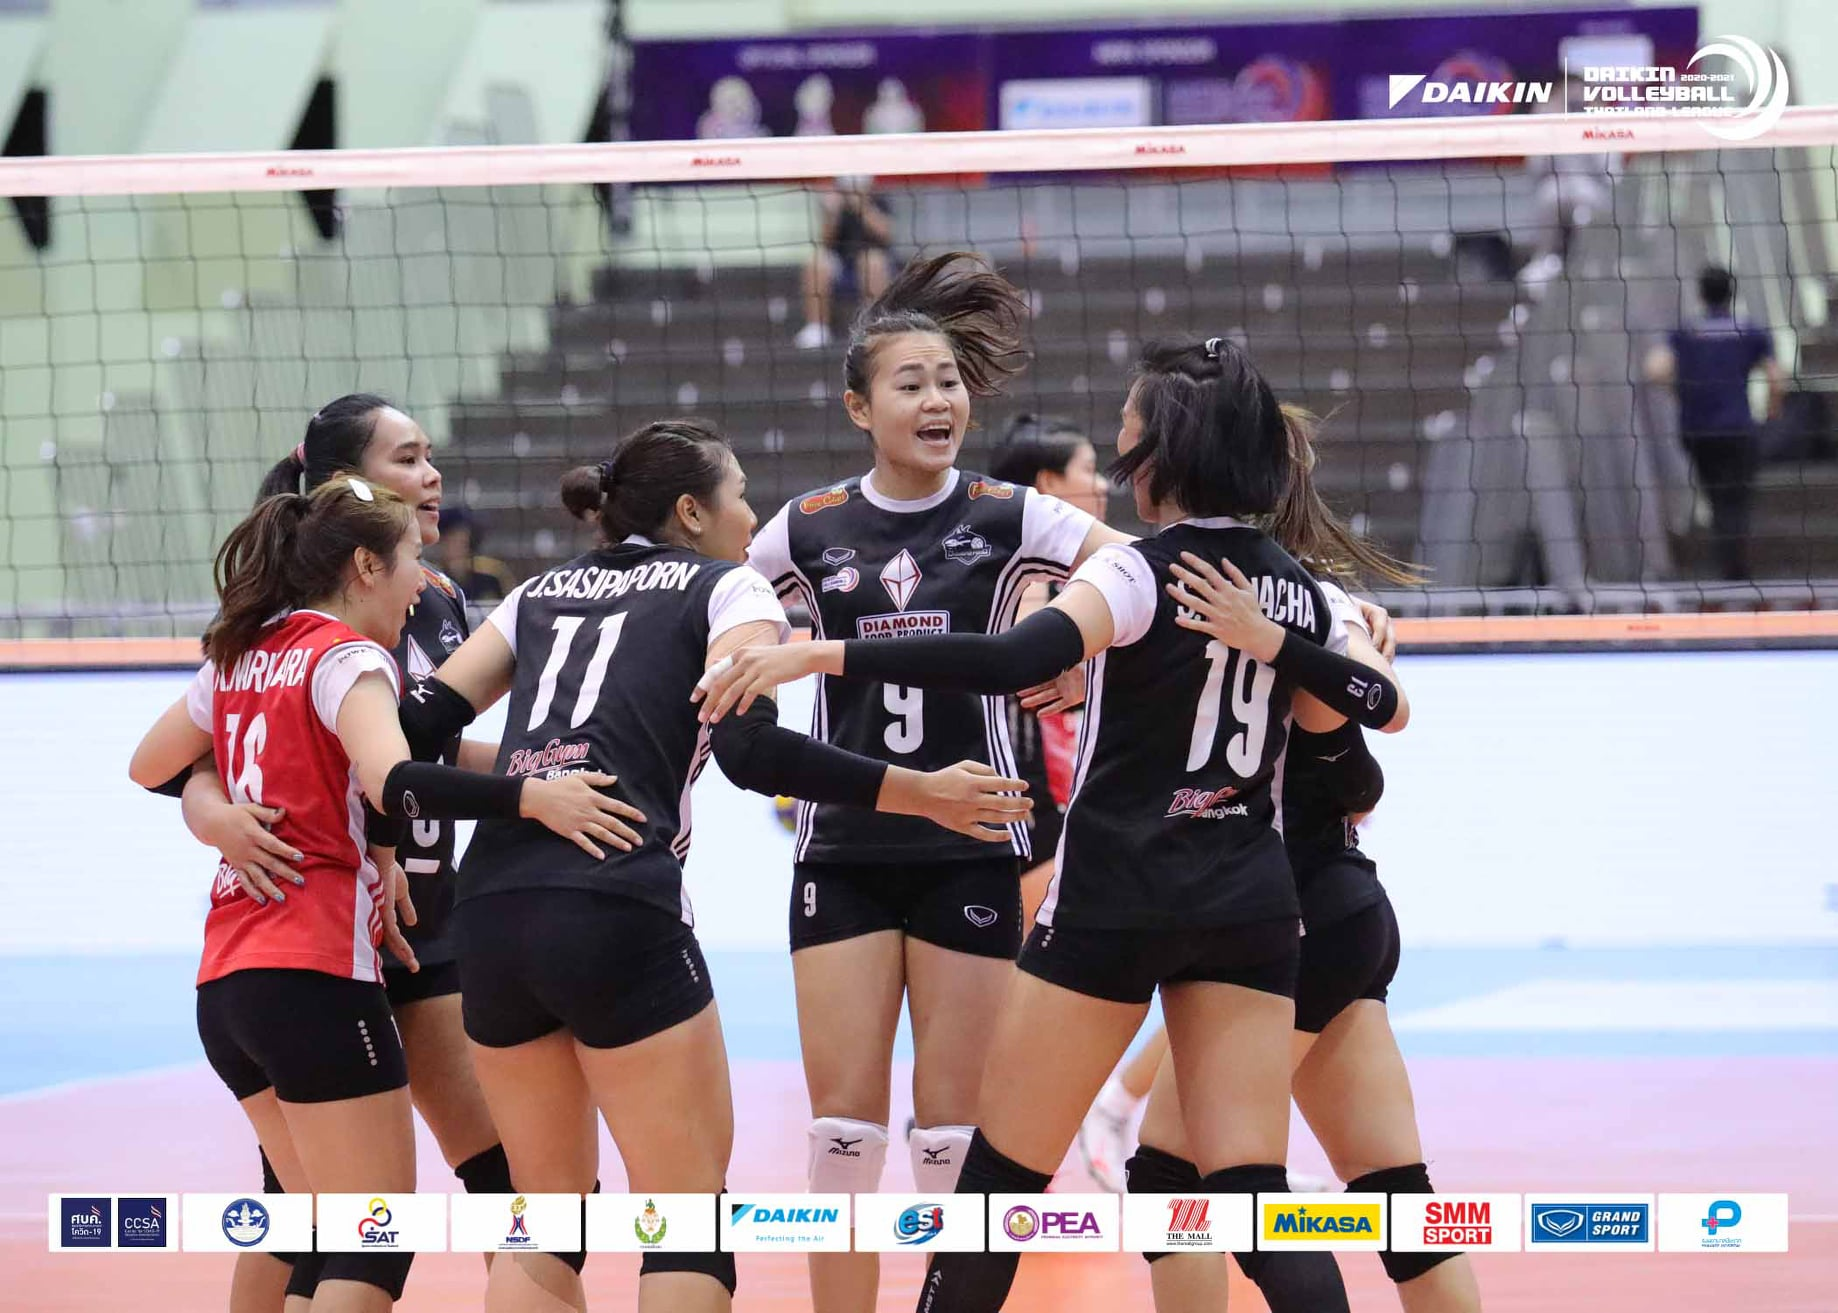 DIAMOND FOOD, NAKHON RATCHASIMA REMAIN UNBEATEN AND STAY ON COURSE IN THAILAND LEAGUE FINALS